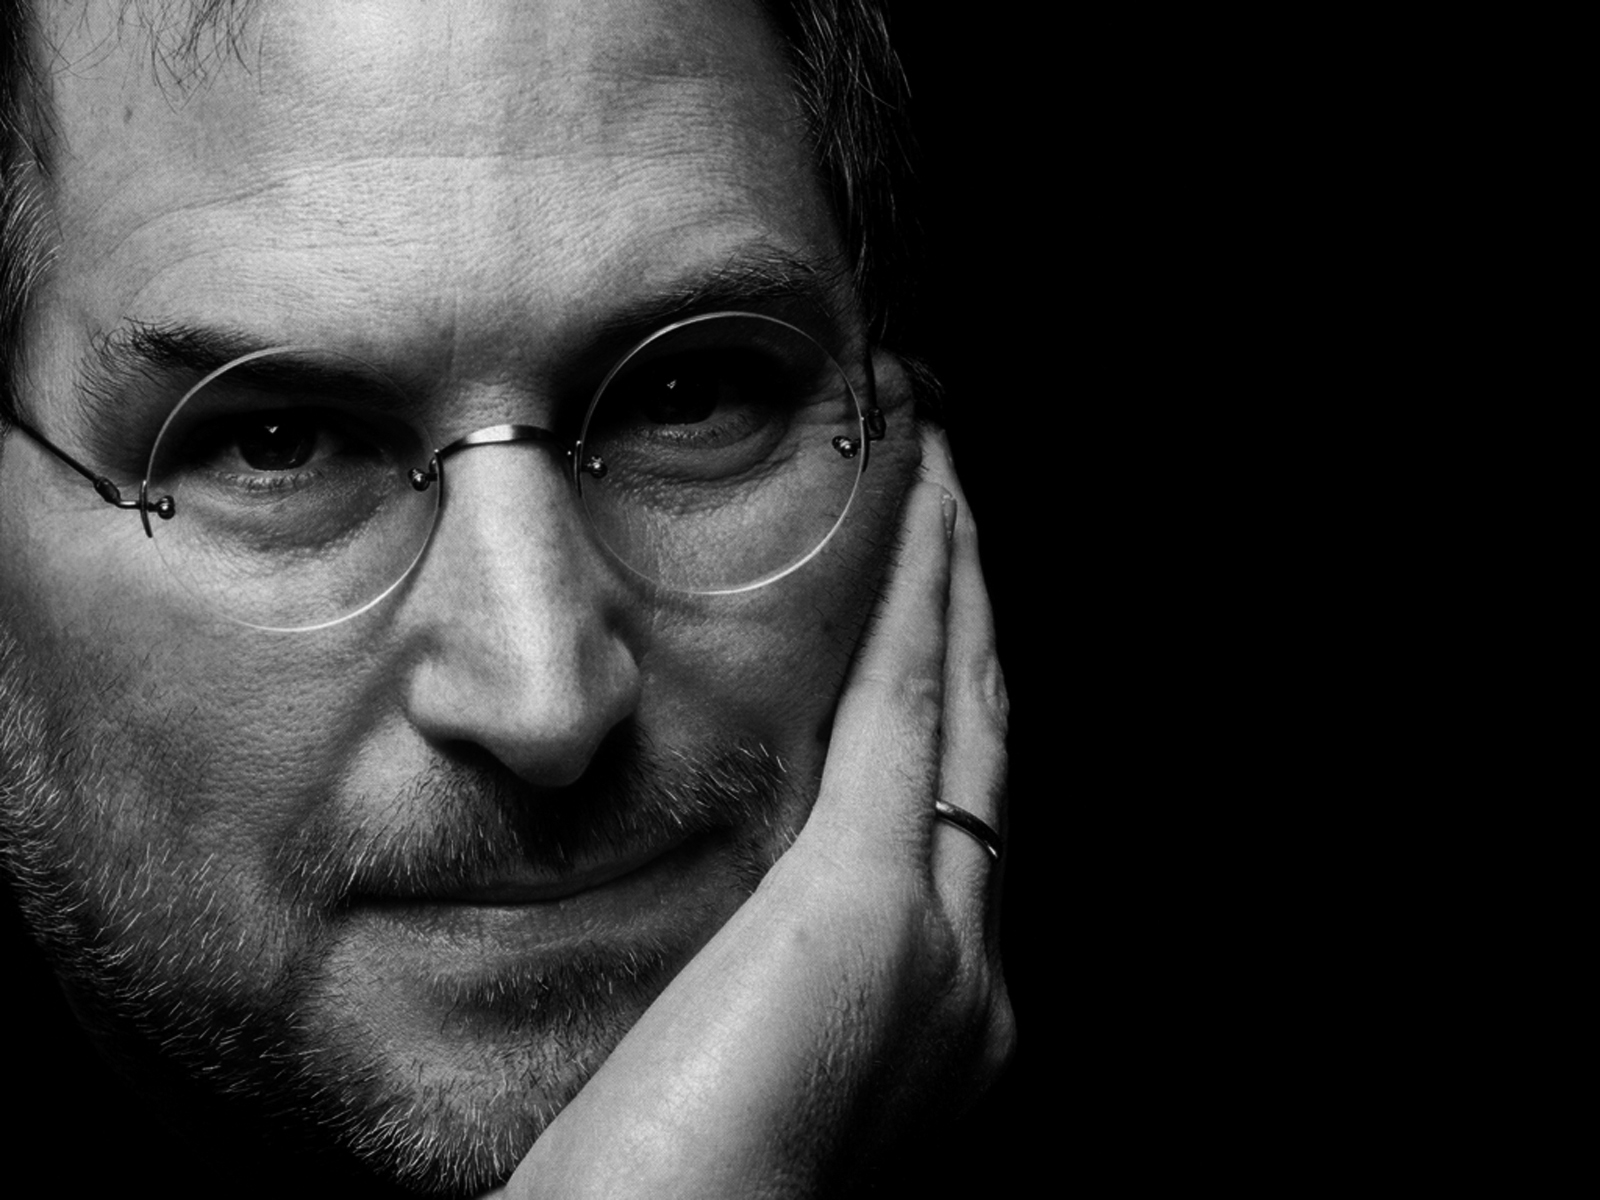 4 Things Steve Jobs Said at the First iPhone Keynote that Seem Hilarious 10 Years Later